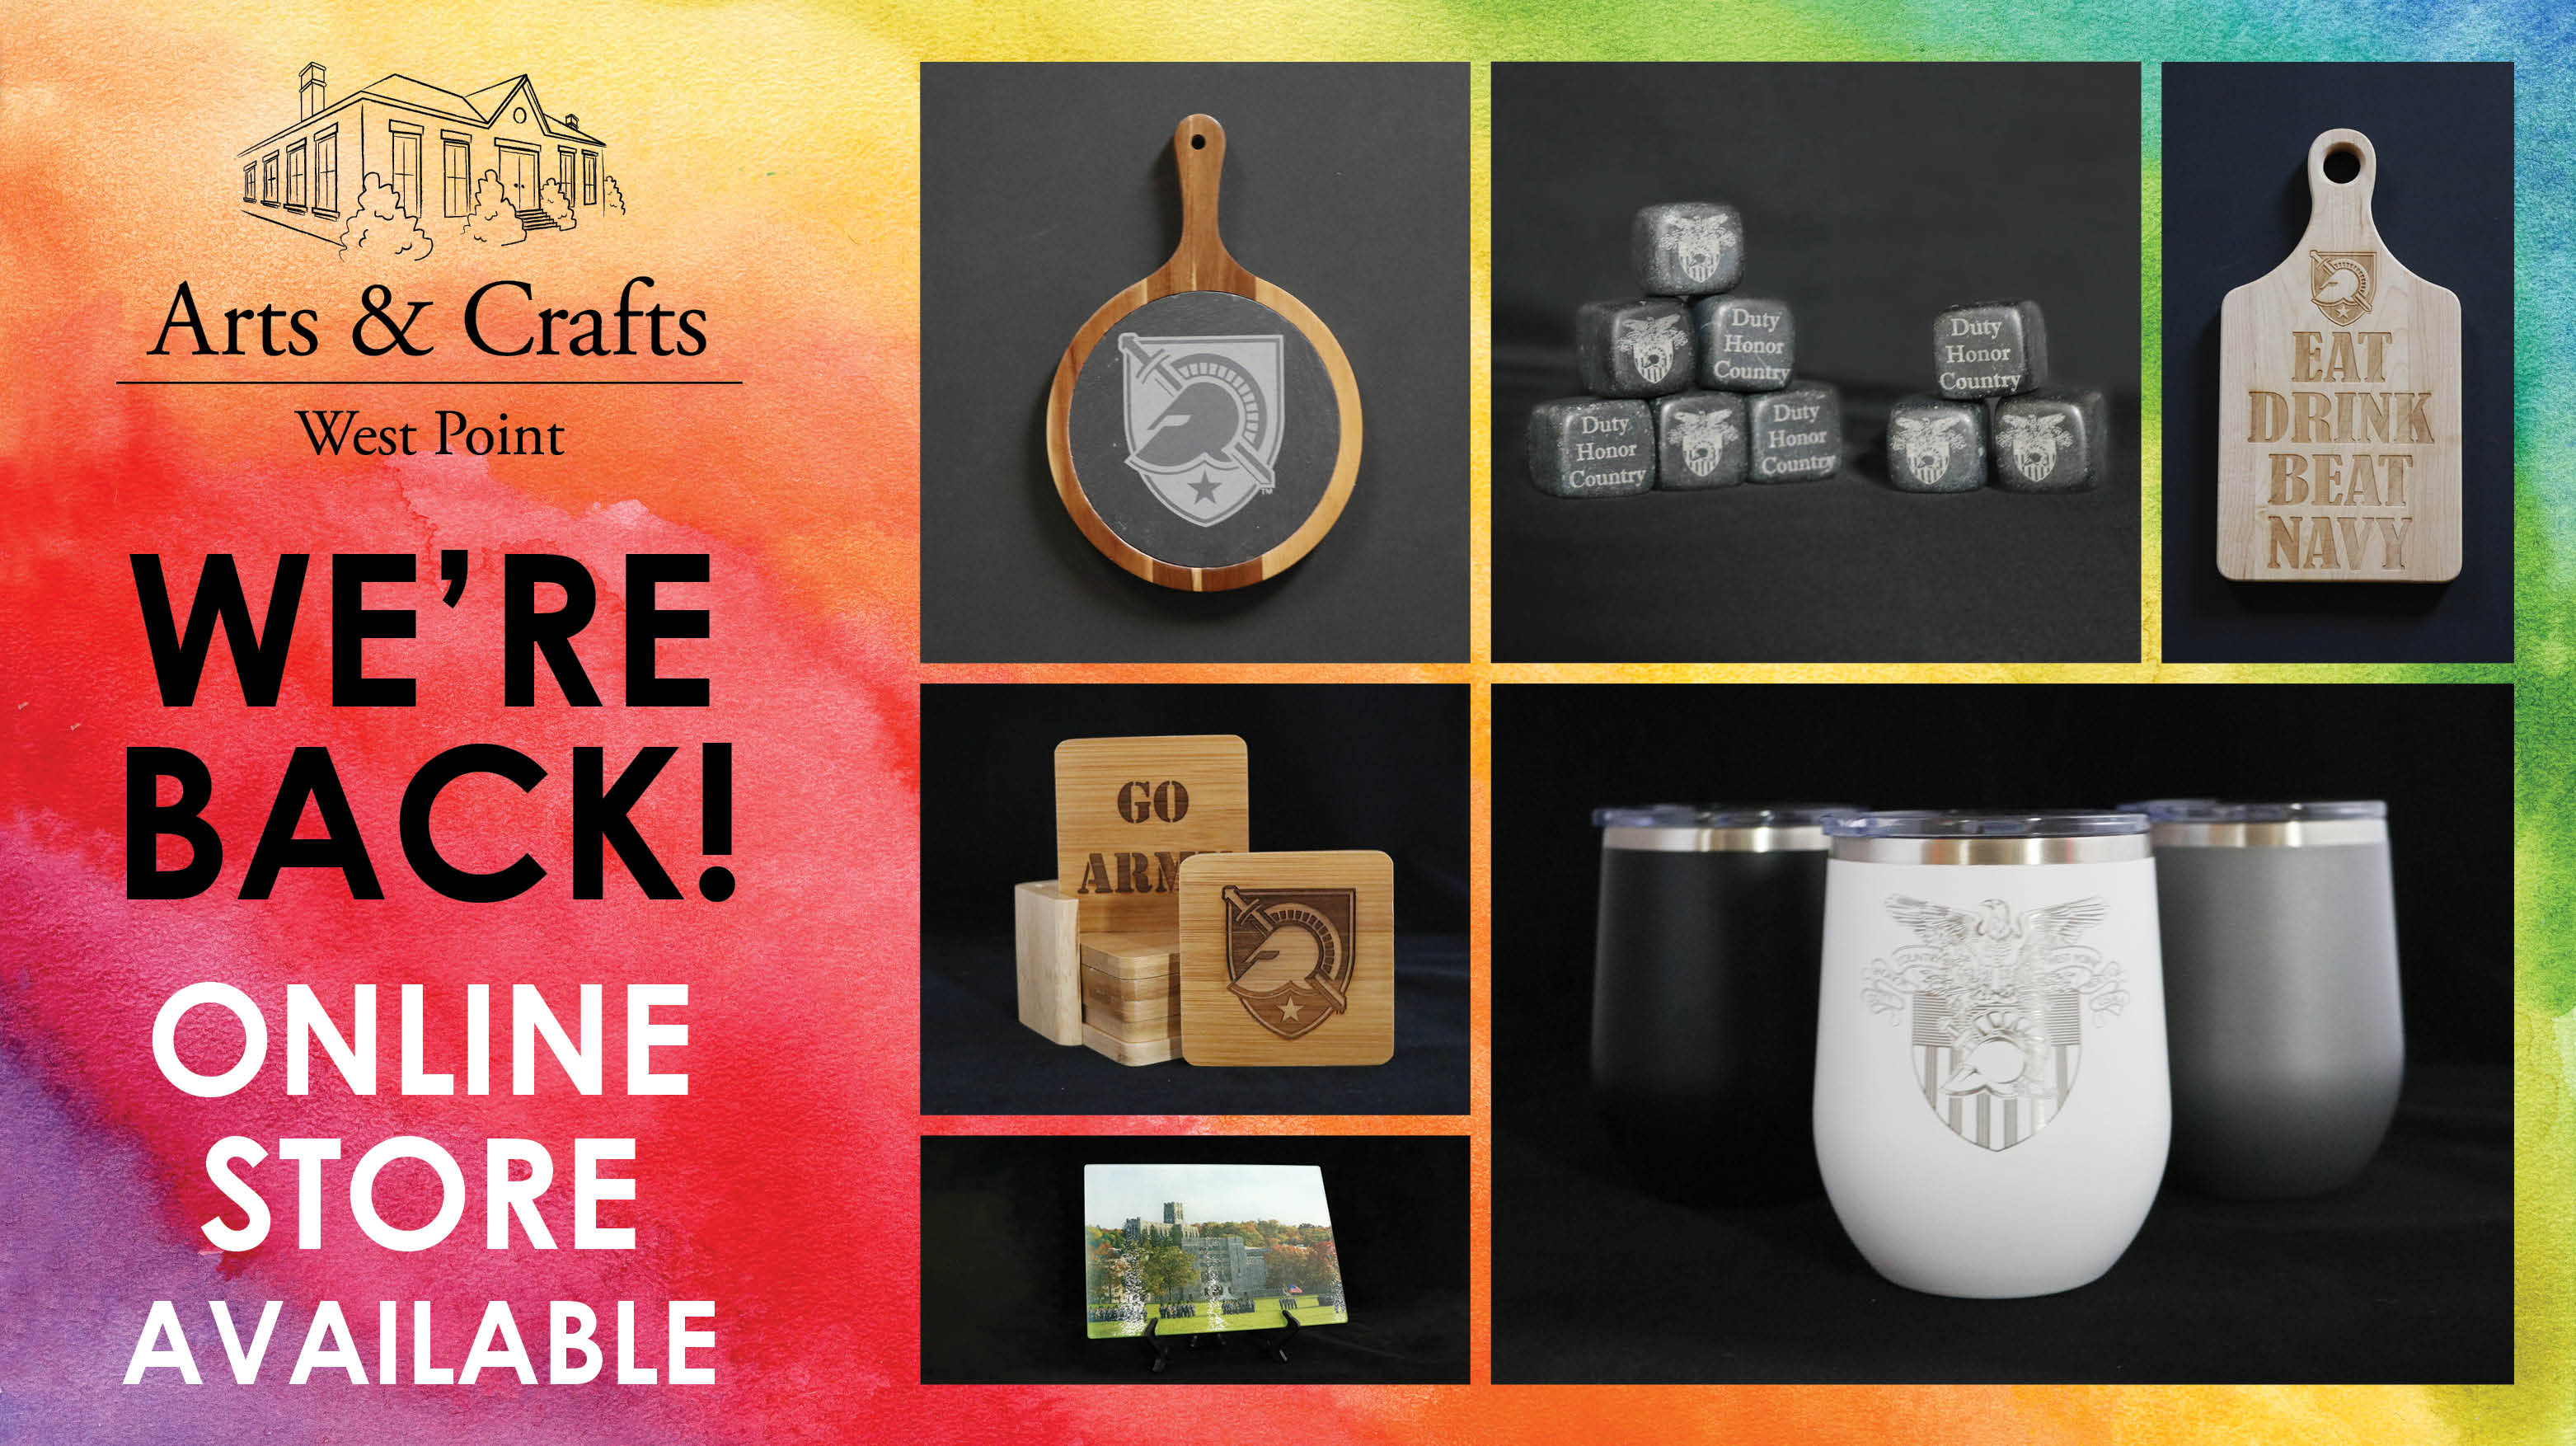 Arts and Crafts Online Store